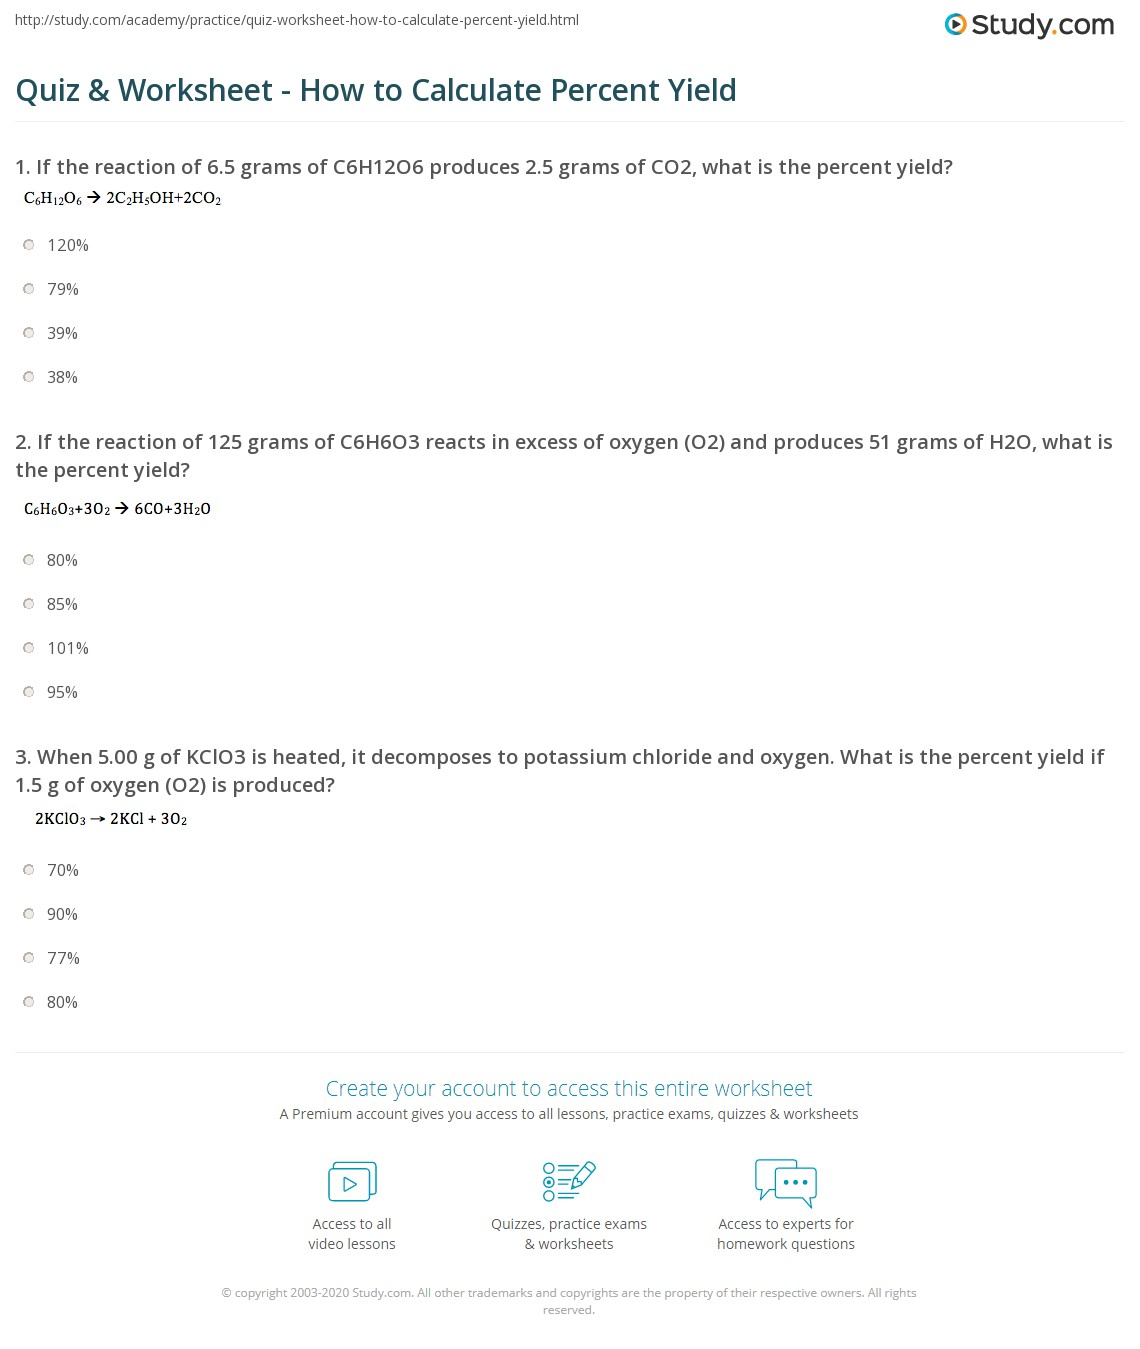 Quiz Worksheet How to Calculate Percent Yield – Percent Yield Worksheet